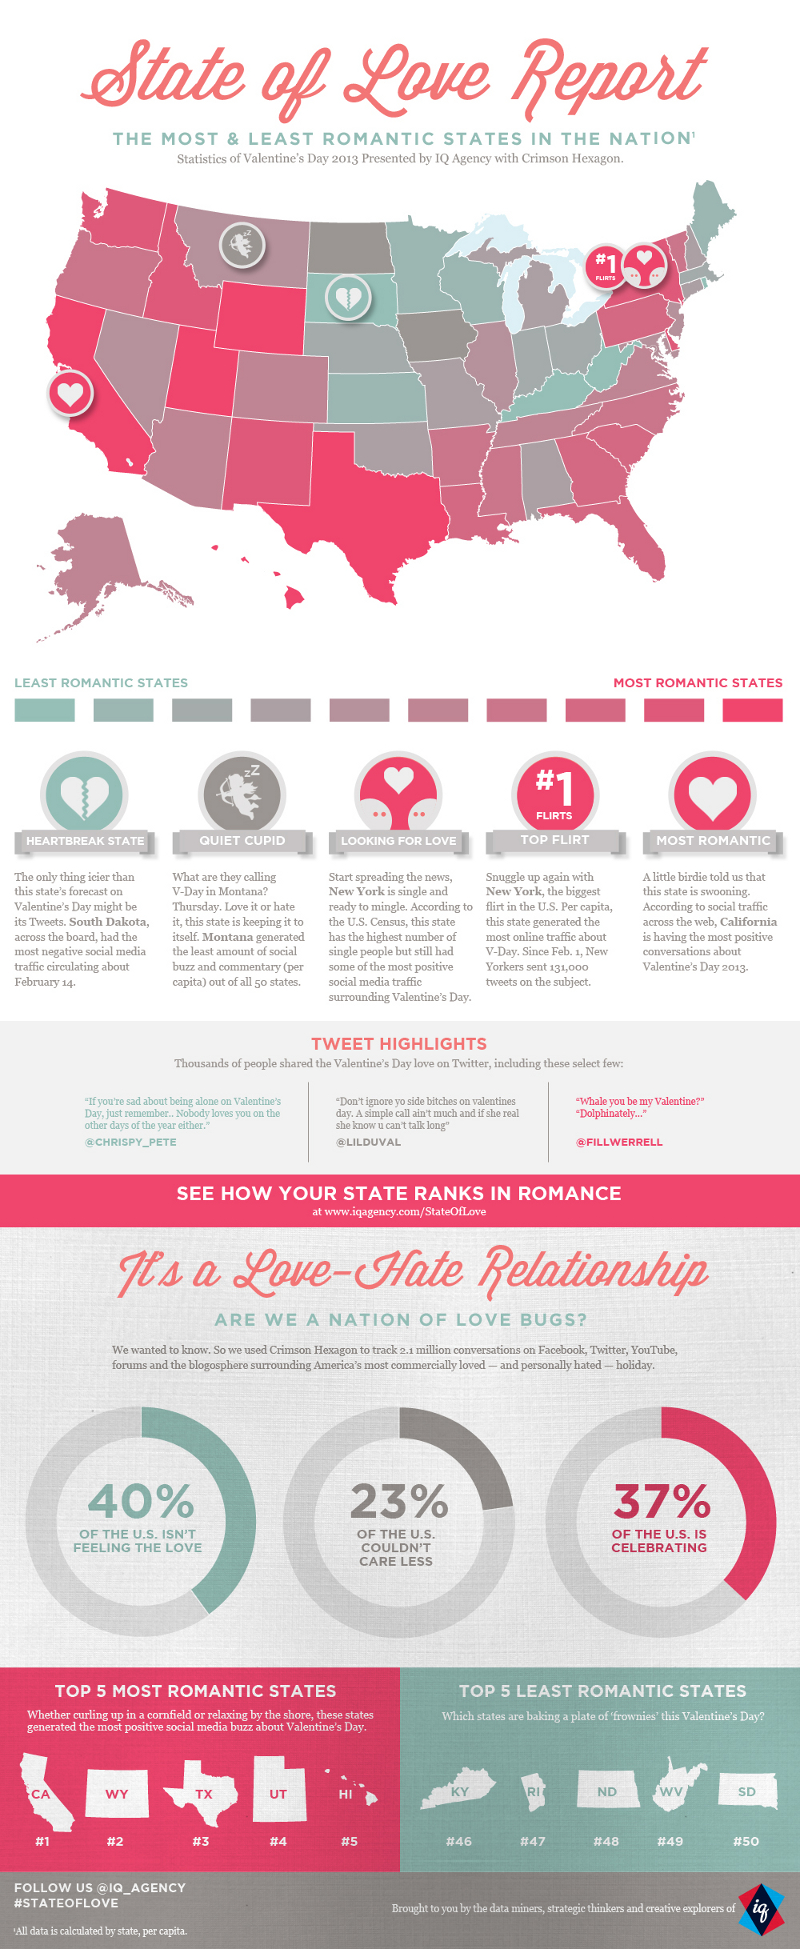 Most Romantic States in the US